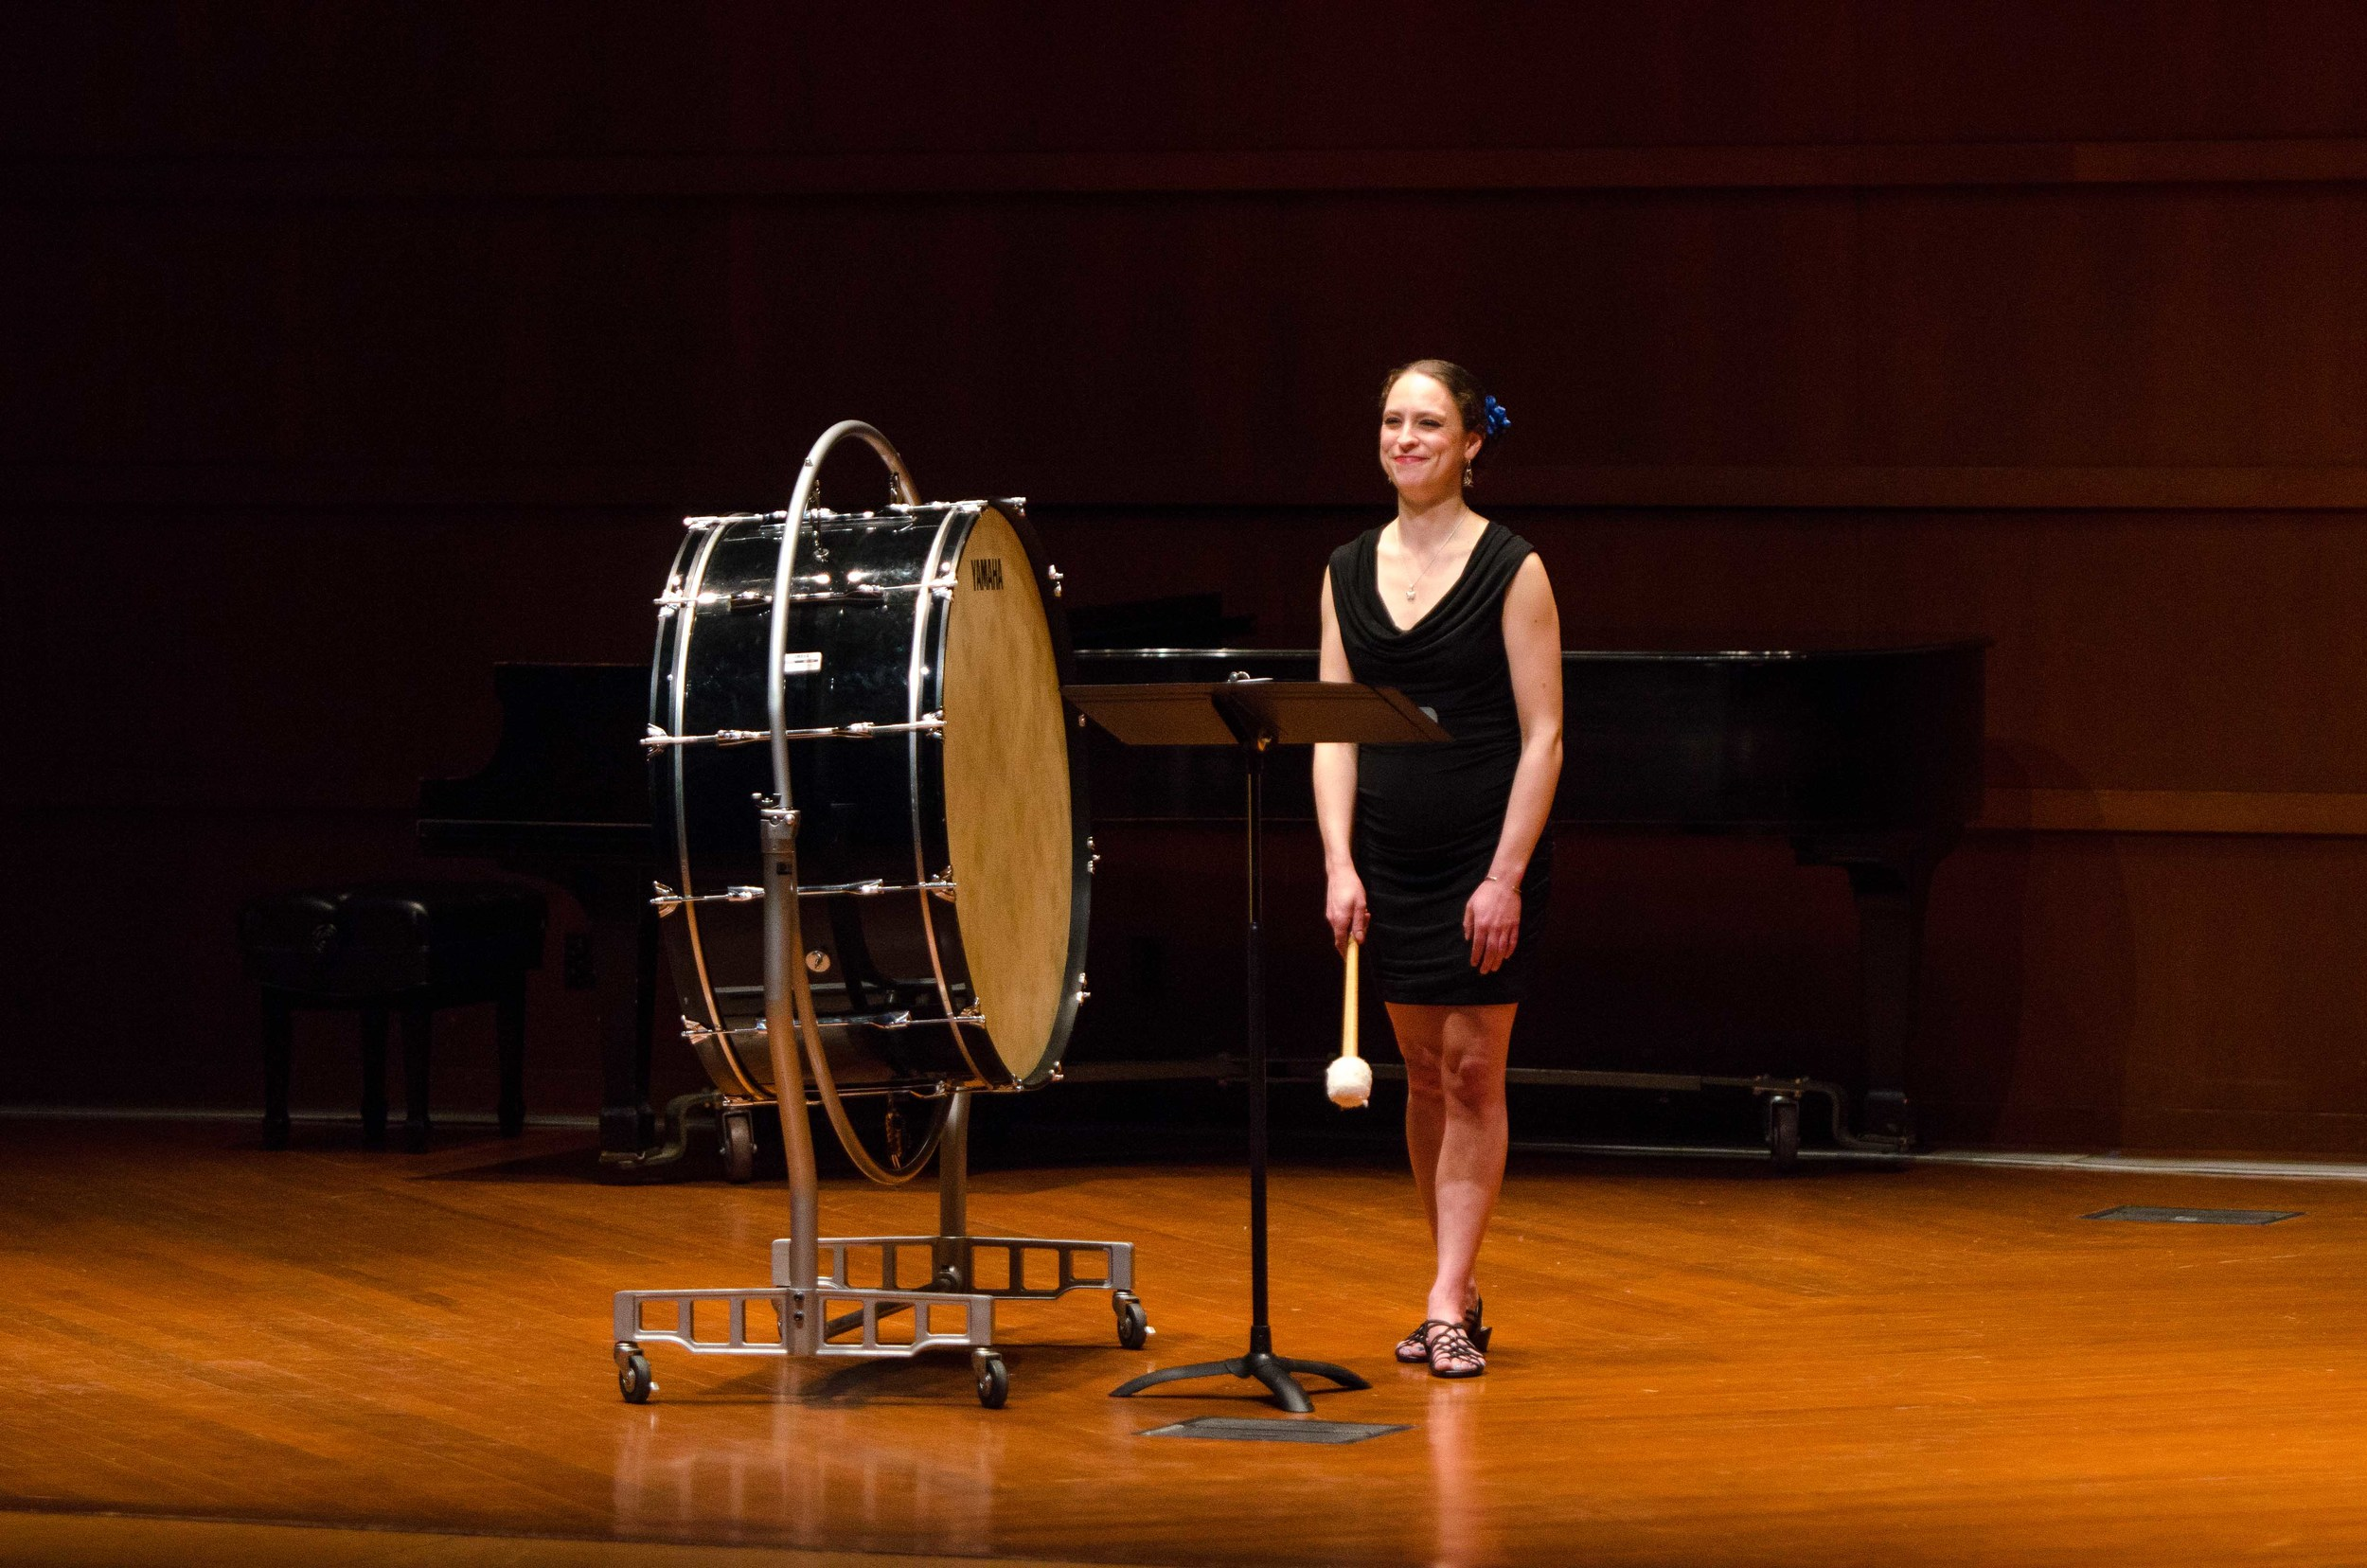 Mezzo-Soprano Lisa Neher performing a solo with bass drum.